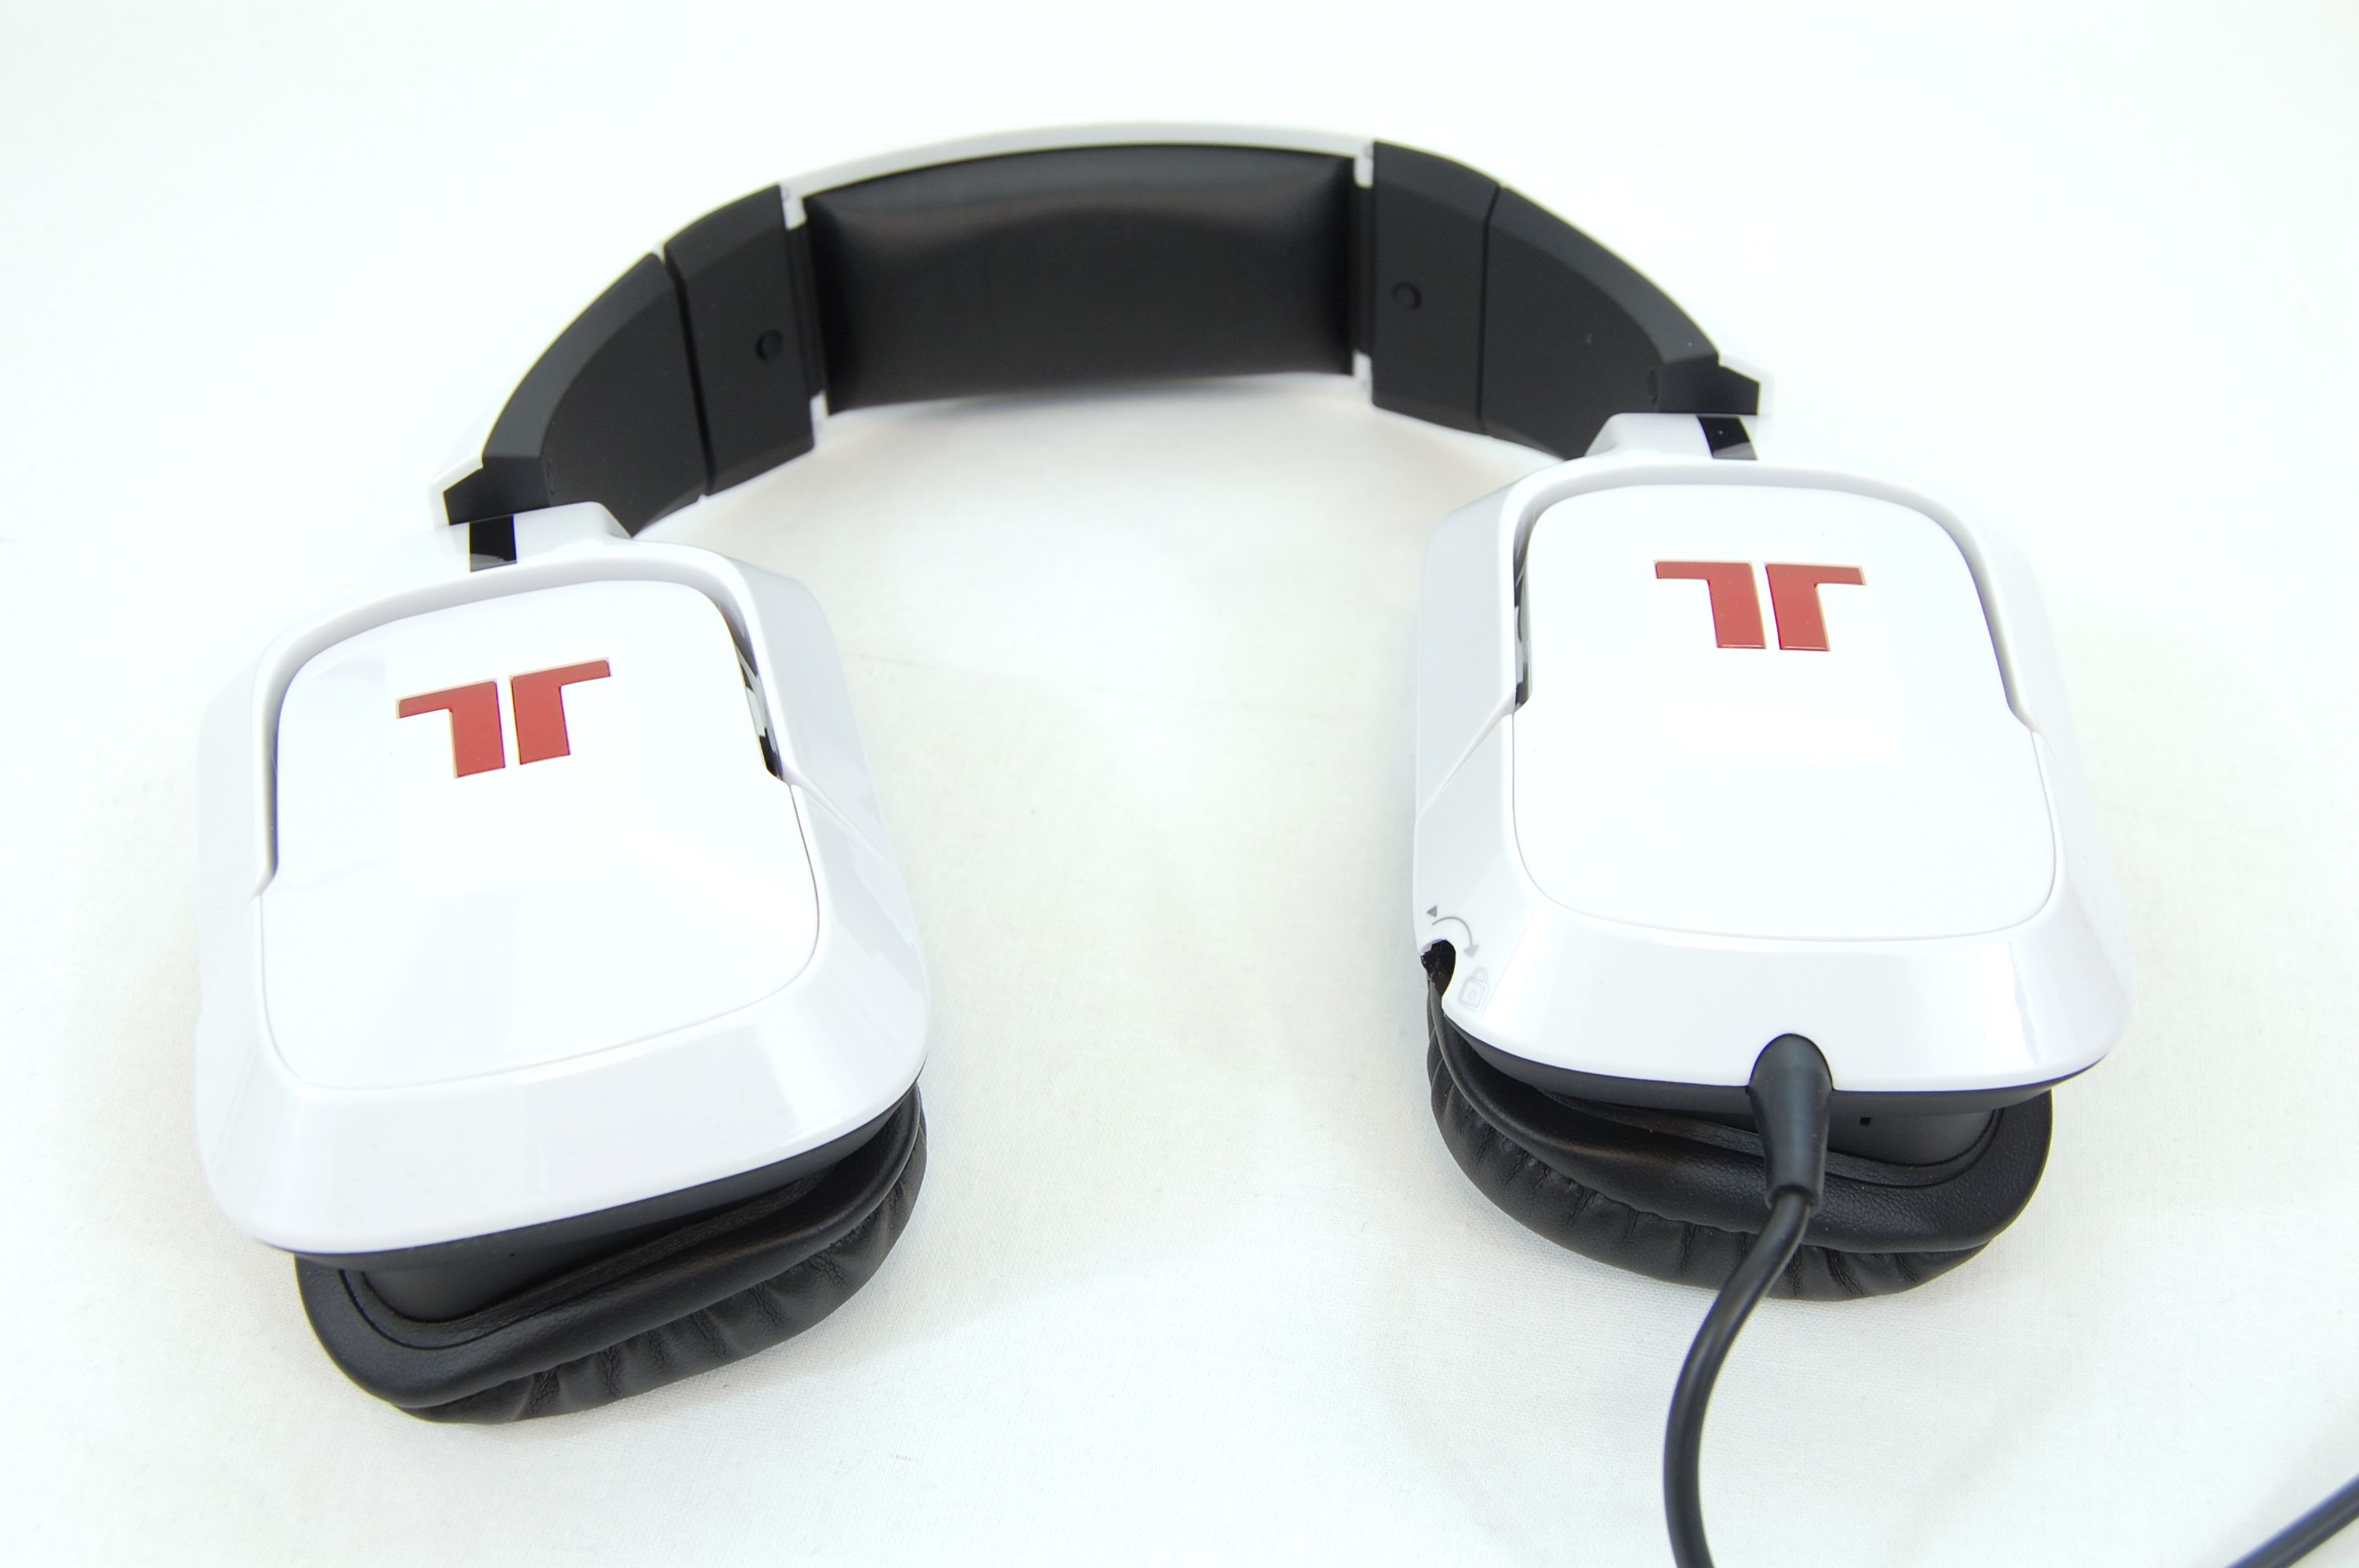 Tritton by MadCatz Pro+ 5.1 Surround Gaming Headset Review - Swivelling Earcup